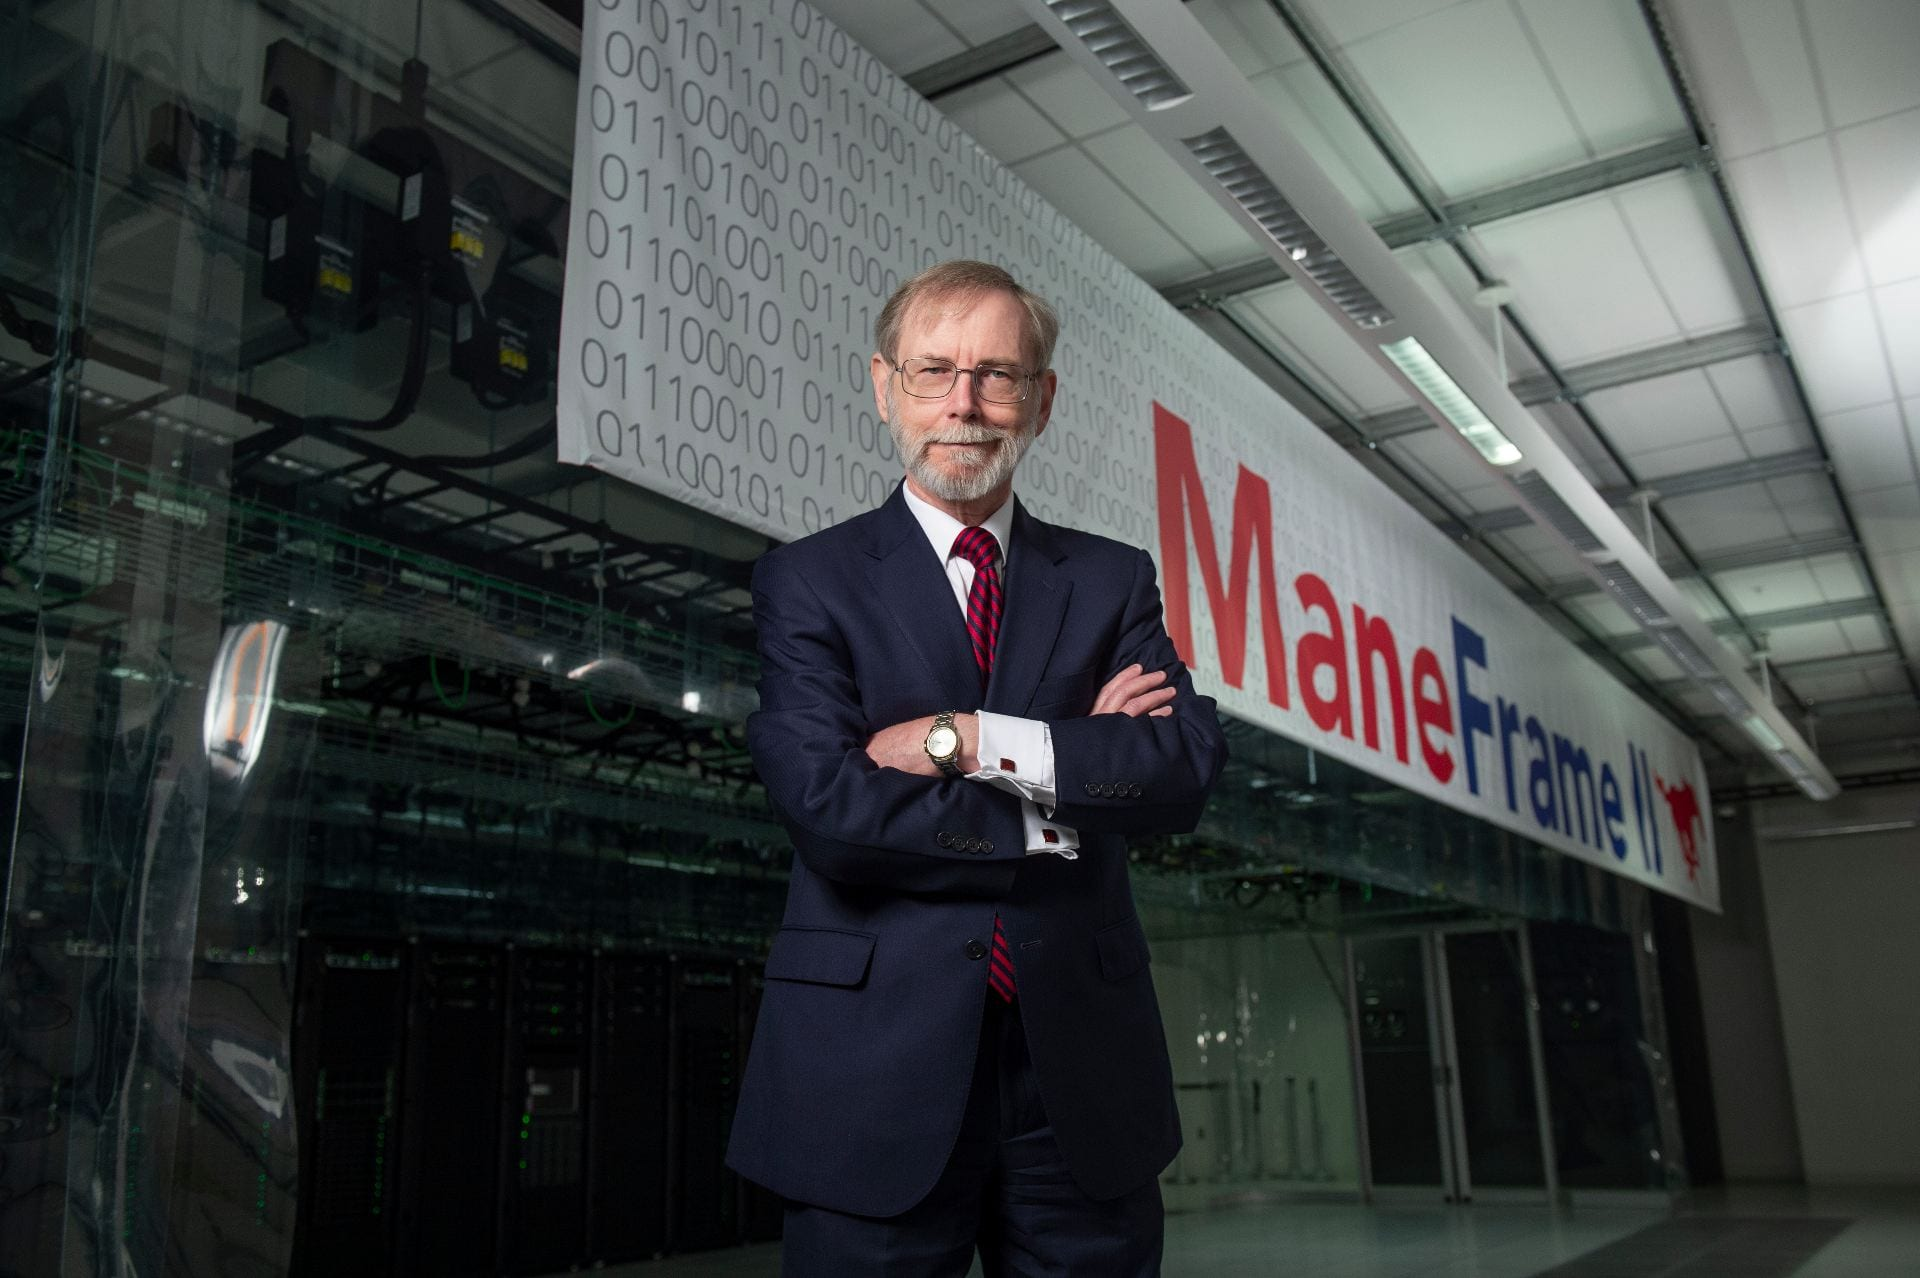 Research Dean James Quick Portrait at Data Center